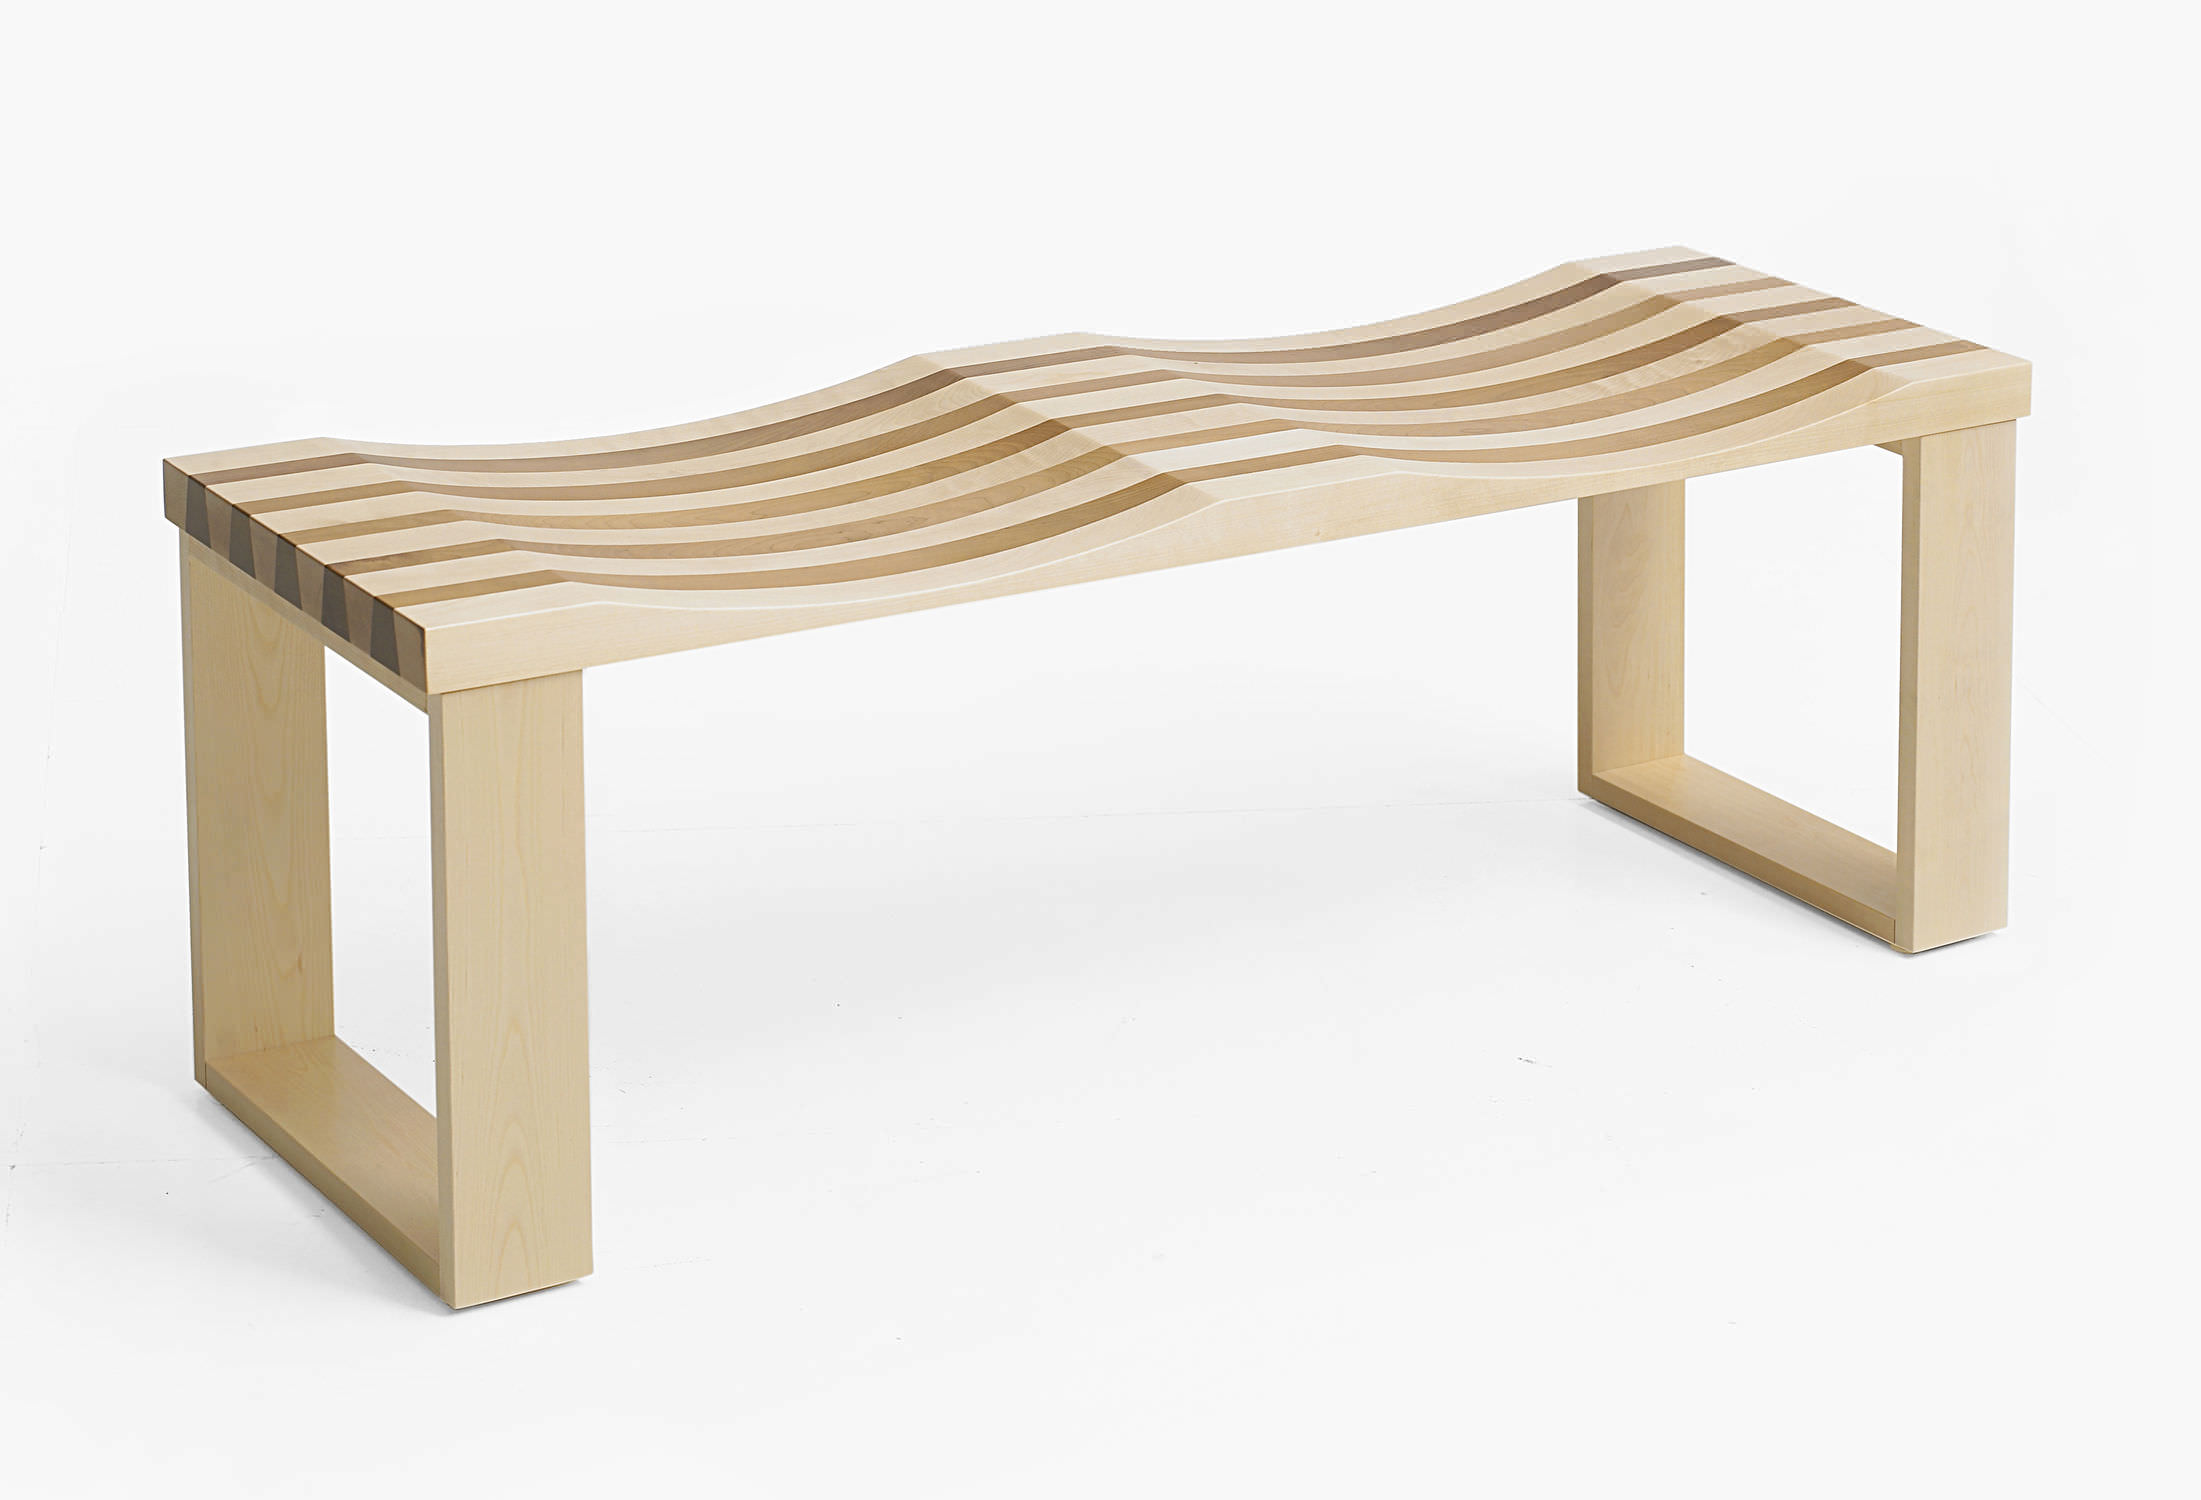 Banc contemporain / en bois / modulaire - SIDEBYSIDE by Filip ...